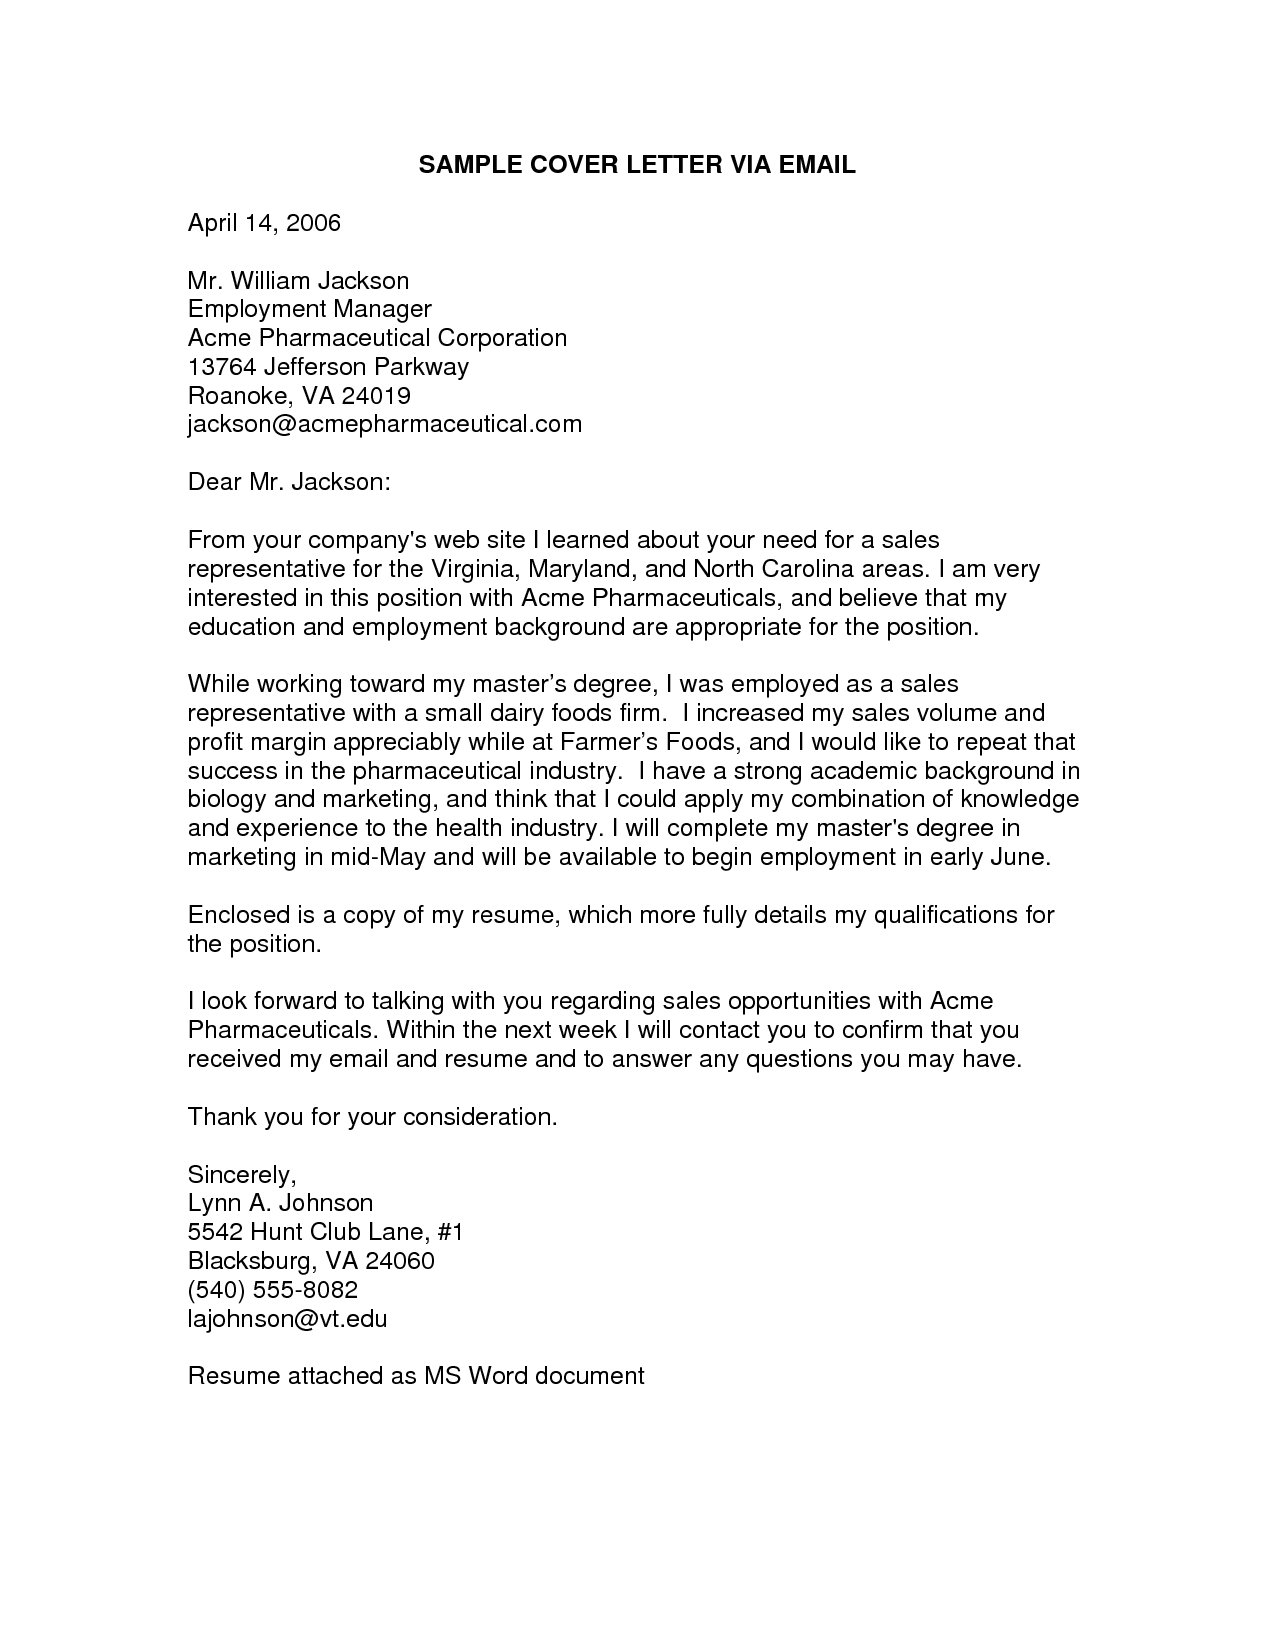 Cover Letter Template Via Email 2 Cover Letter Template